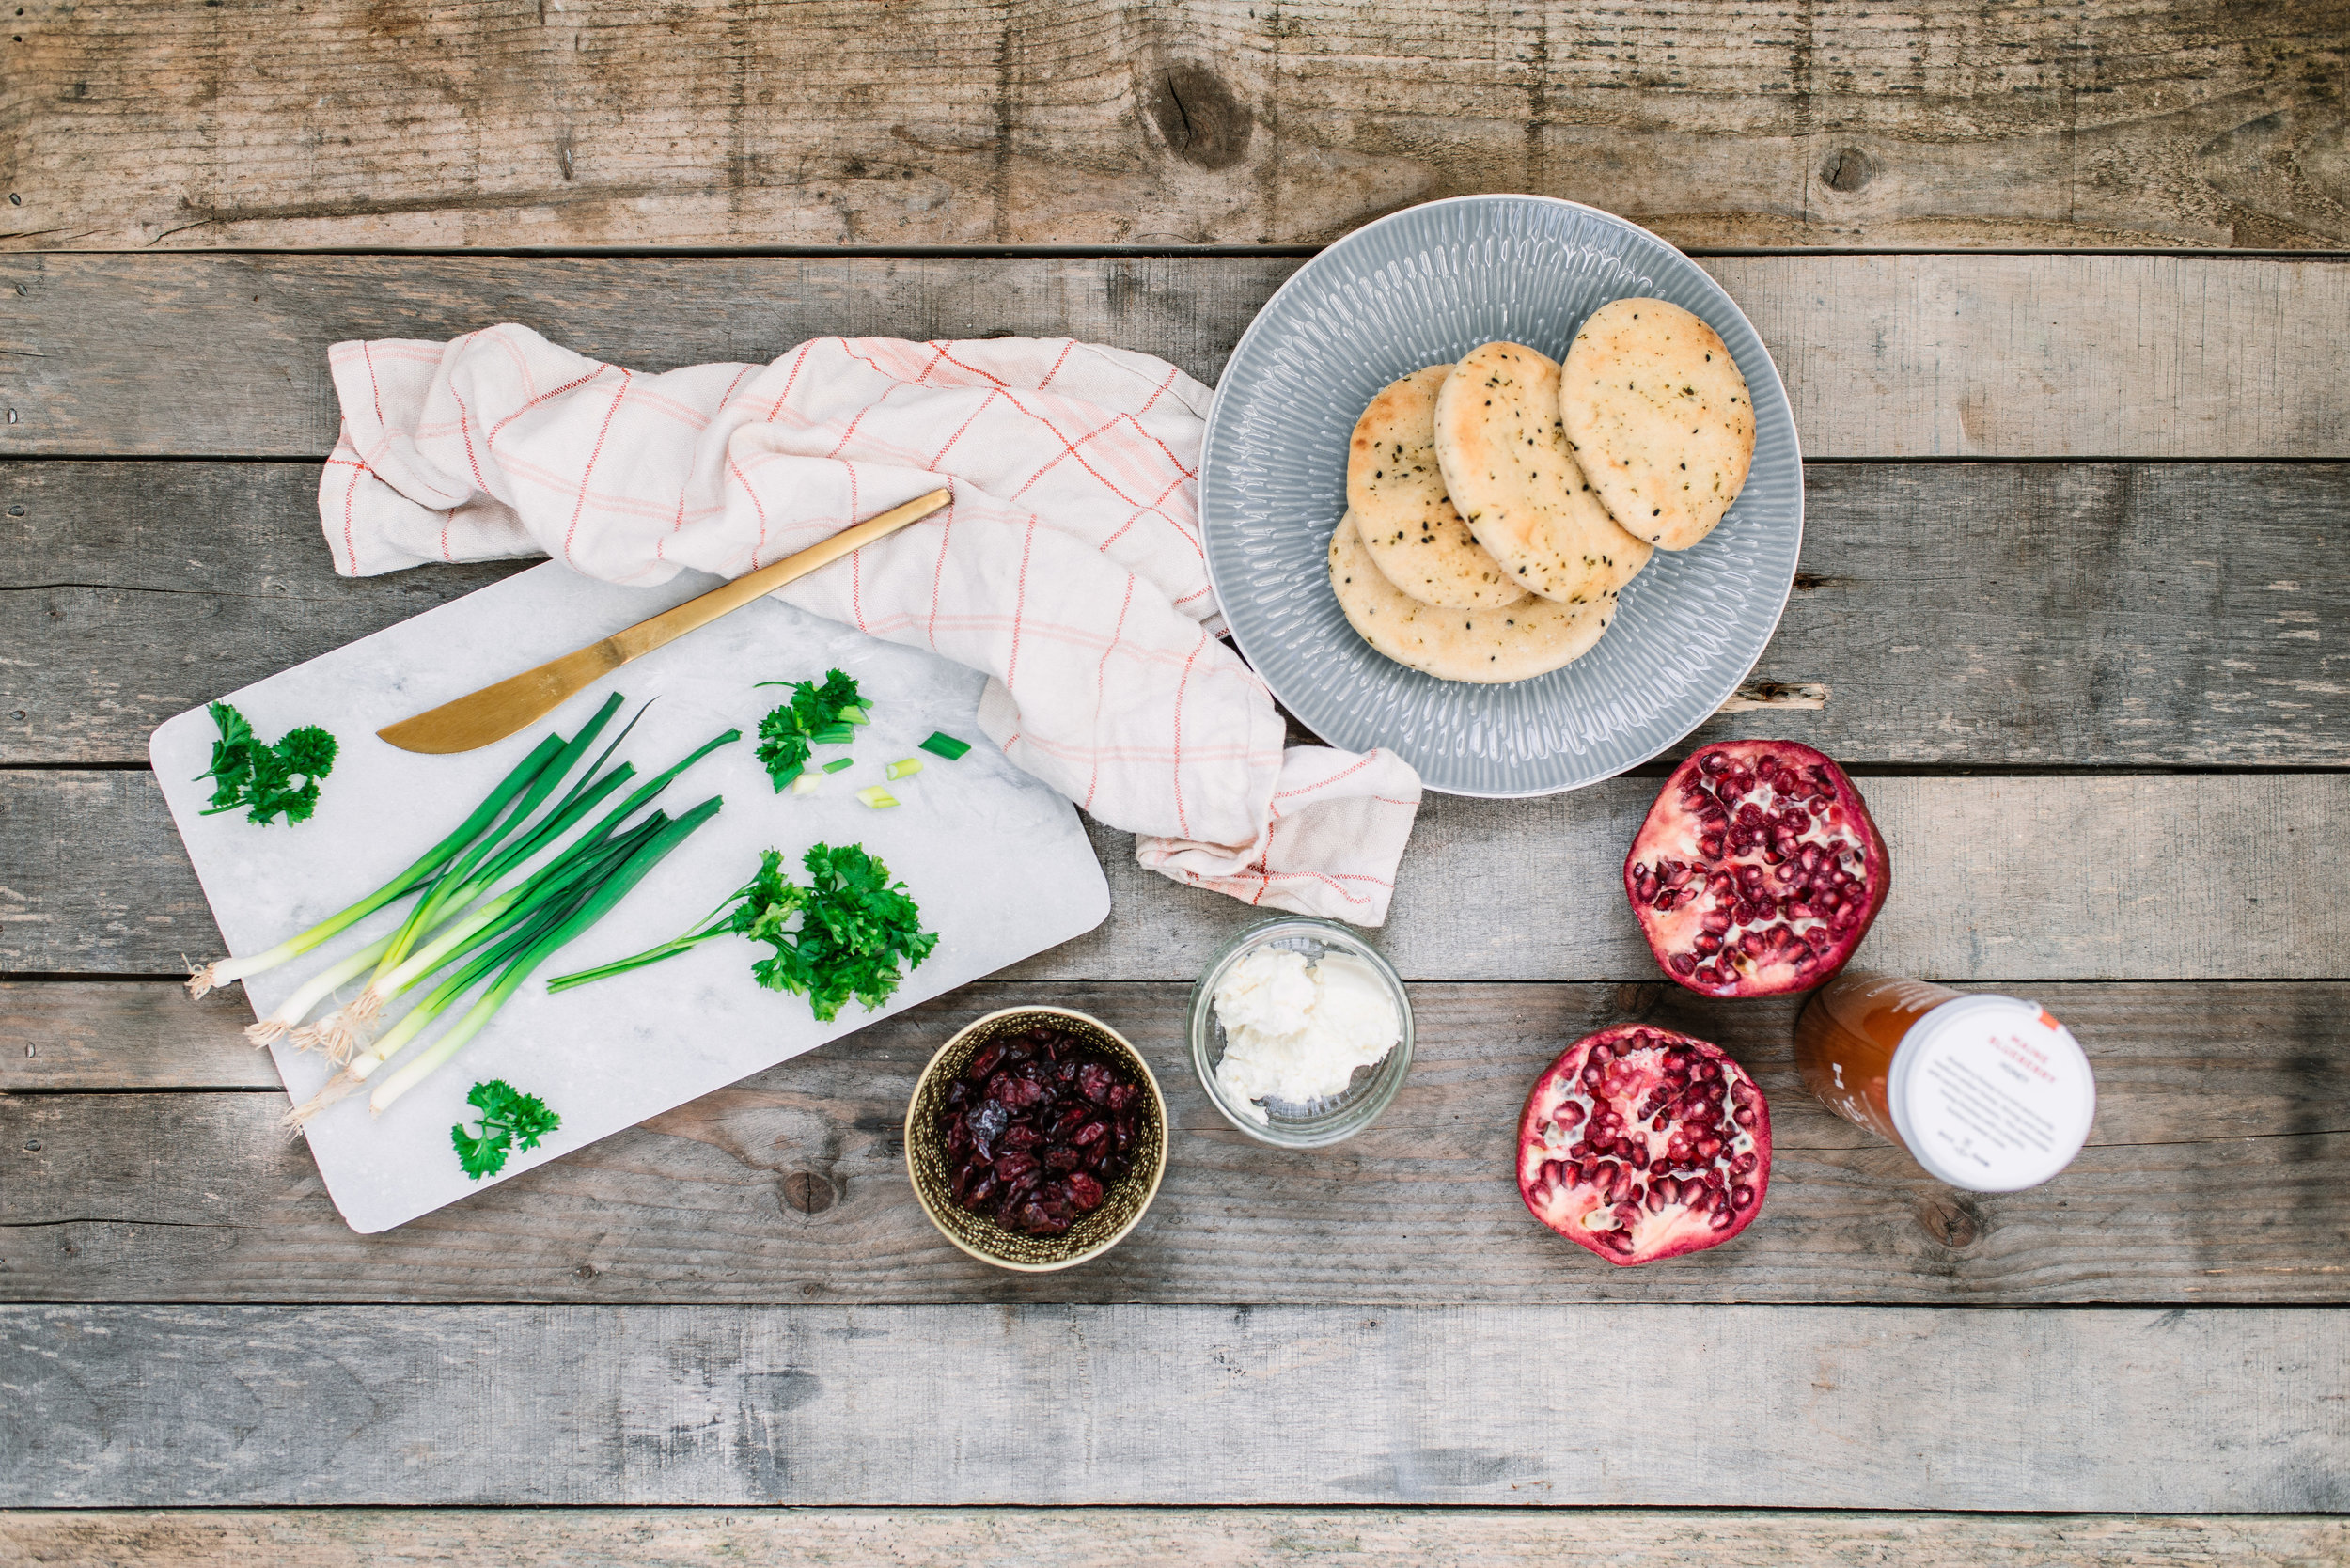 Paper_and_Moon_pomegranate_naan_bread_cranberries_honey_mascarpone_herbs_vegetarian_recipe.jpg